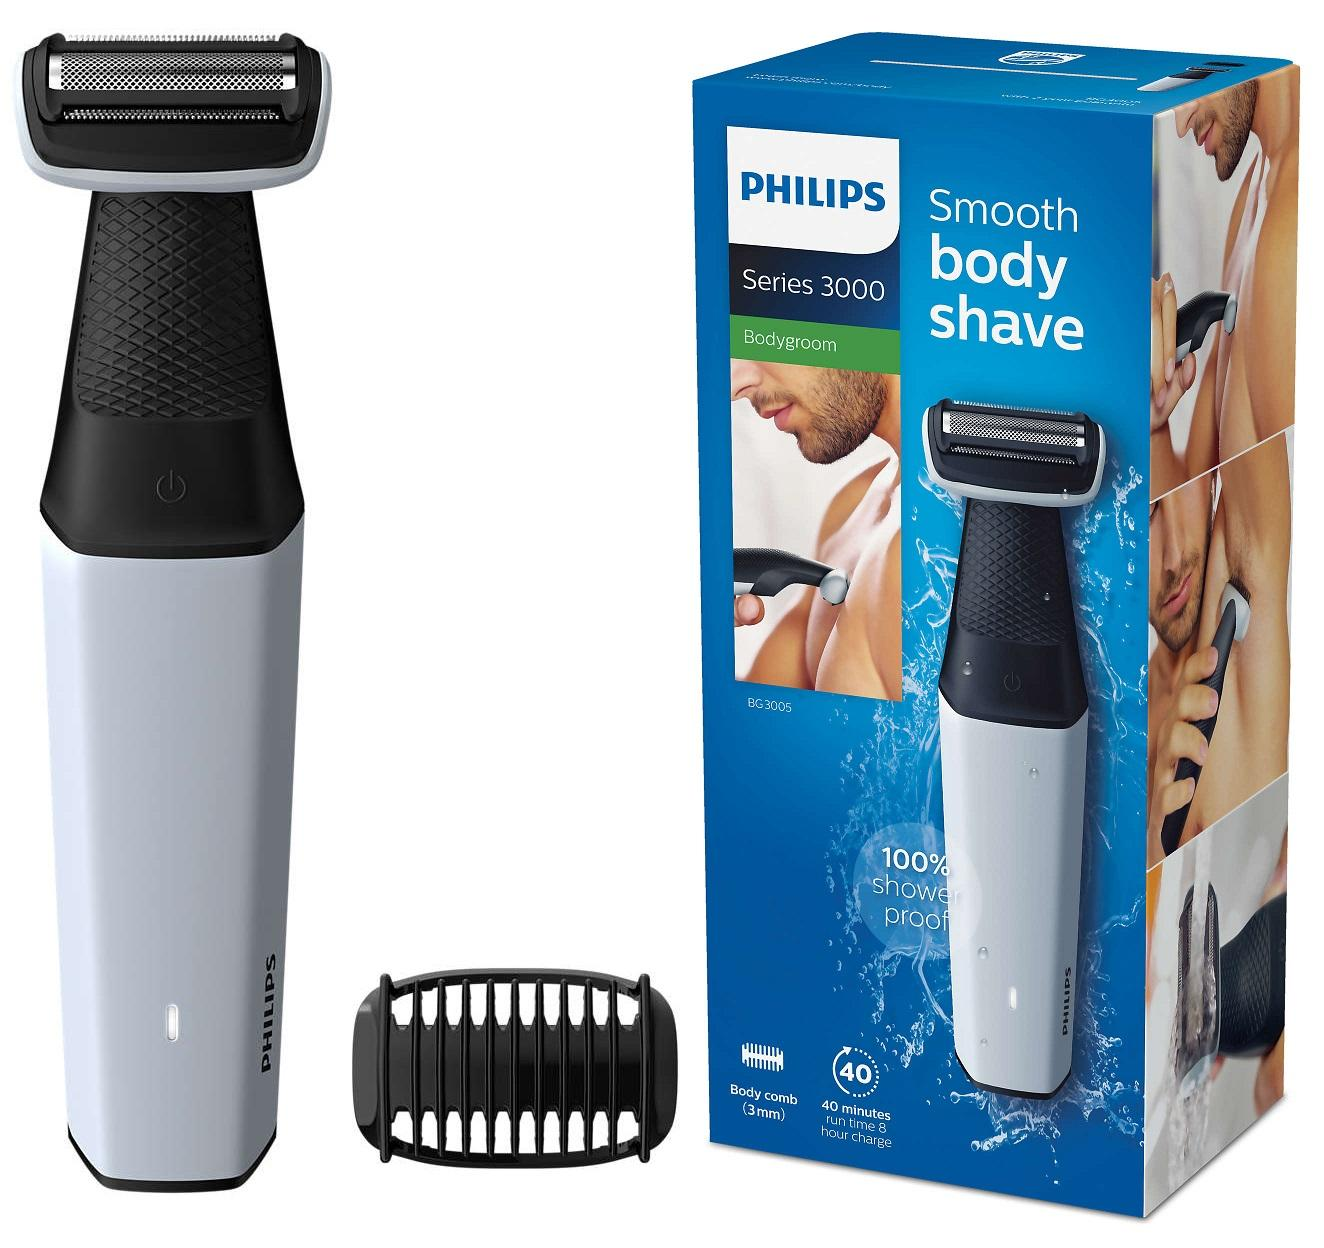 Philips Bg3005 Bodygroom Series 3000 Smooth Body Shave Price Comparison